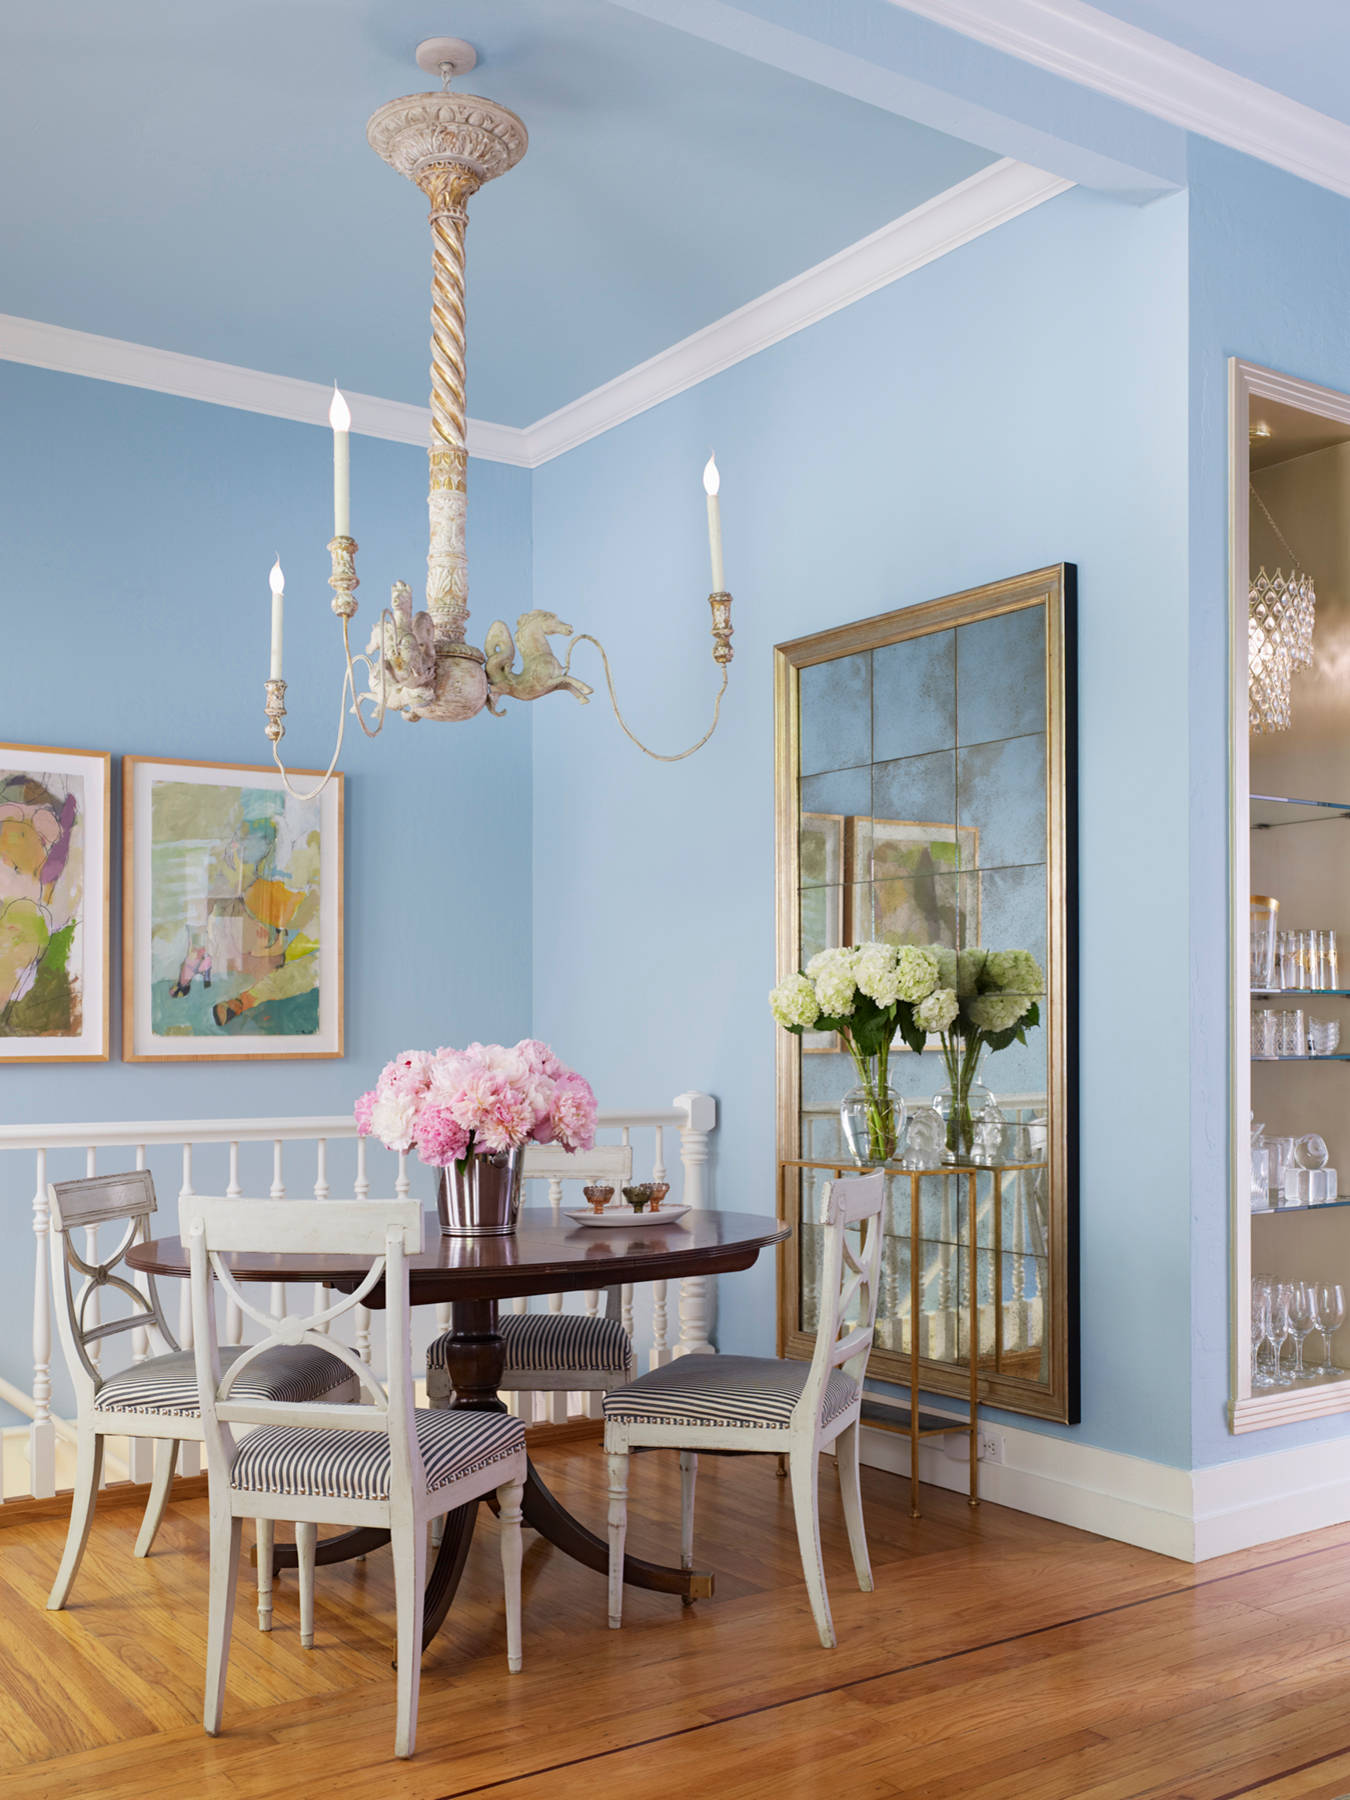 5 Stunning Pastel Rooms Decorating With Pantone 2016